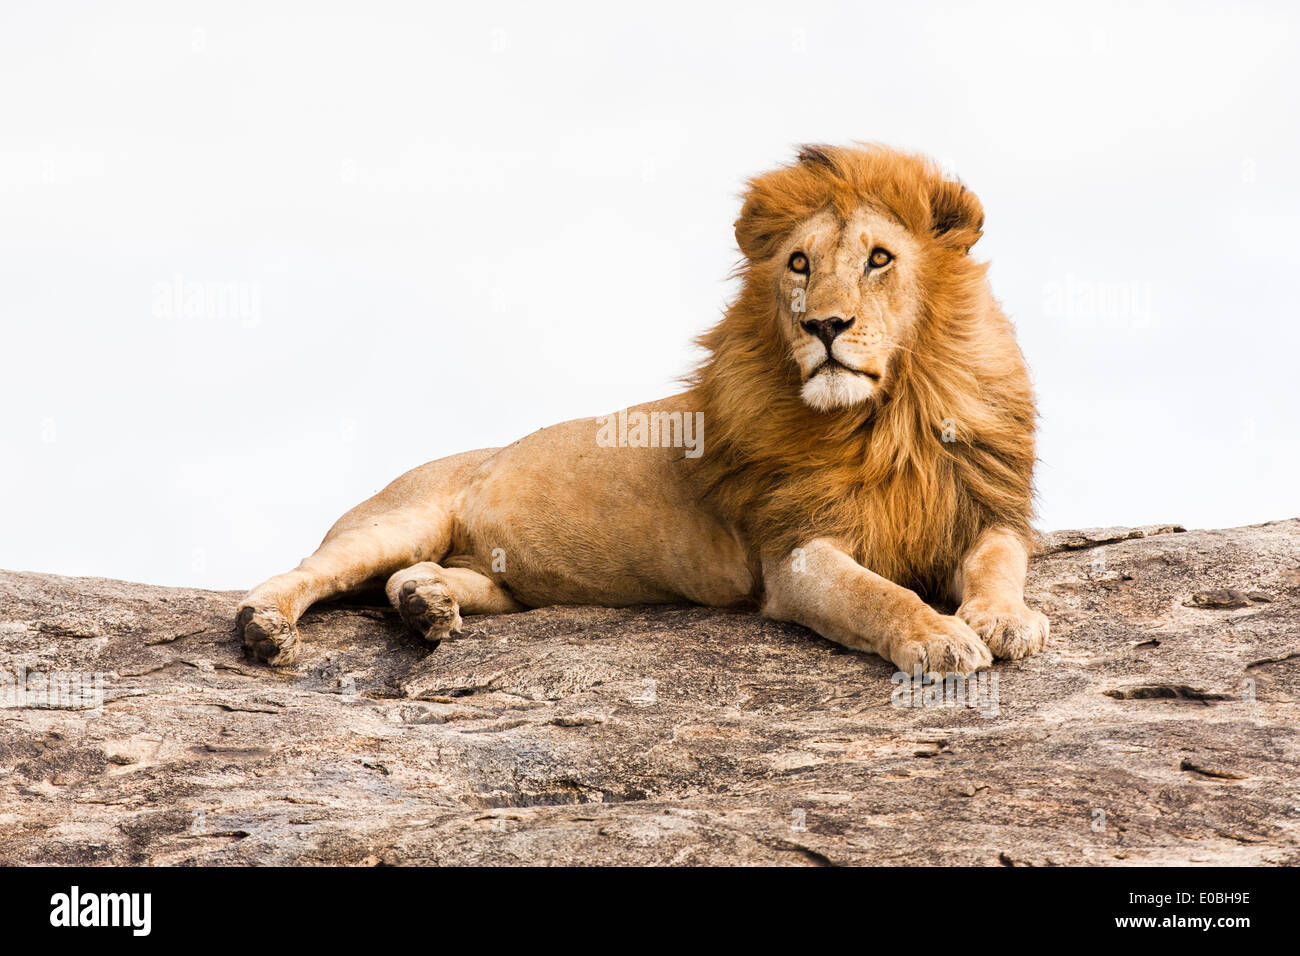 lion (Panthera leo) on a rock boulder Photographed in Tanzania - Stock Image